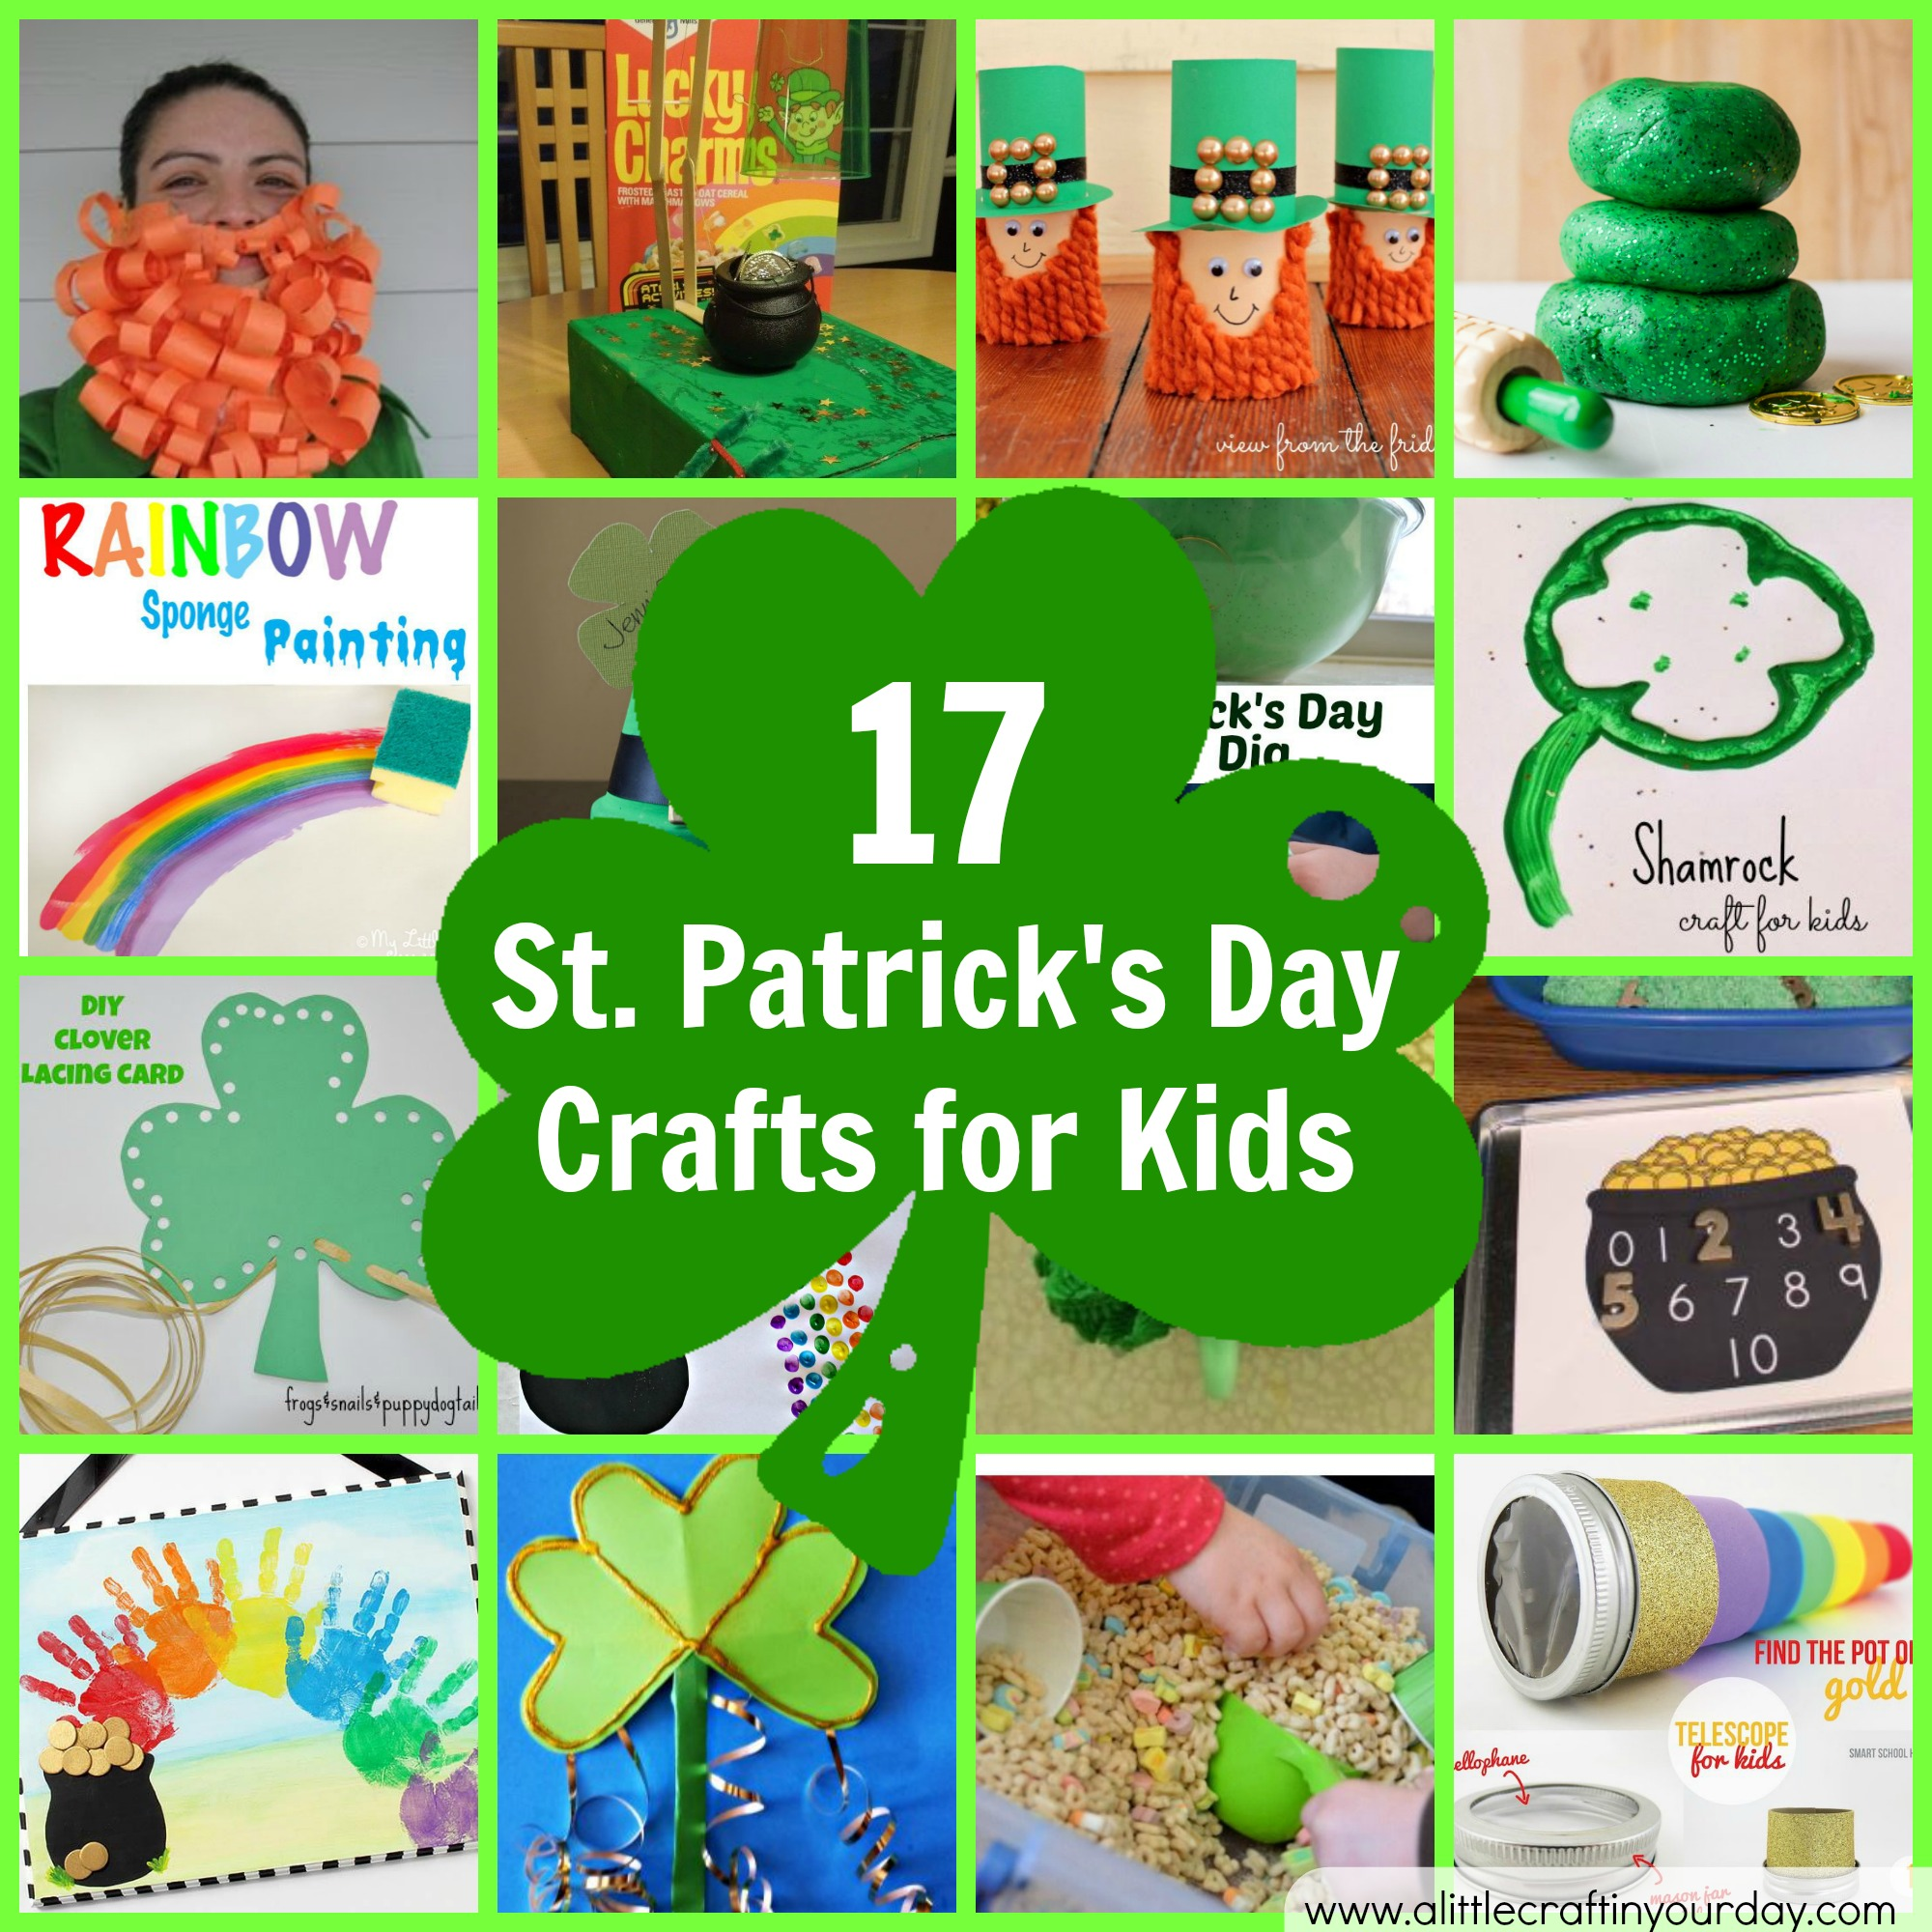 St patricks day preschool crafts - 2 28 17 St Patrick S Day Crafts For Kids 17_st_patricks_day_crafts_for_kids